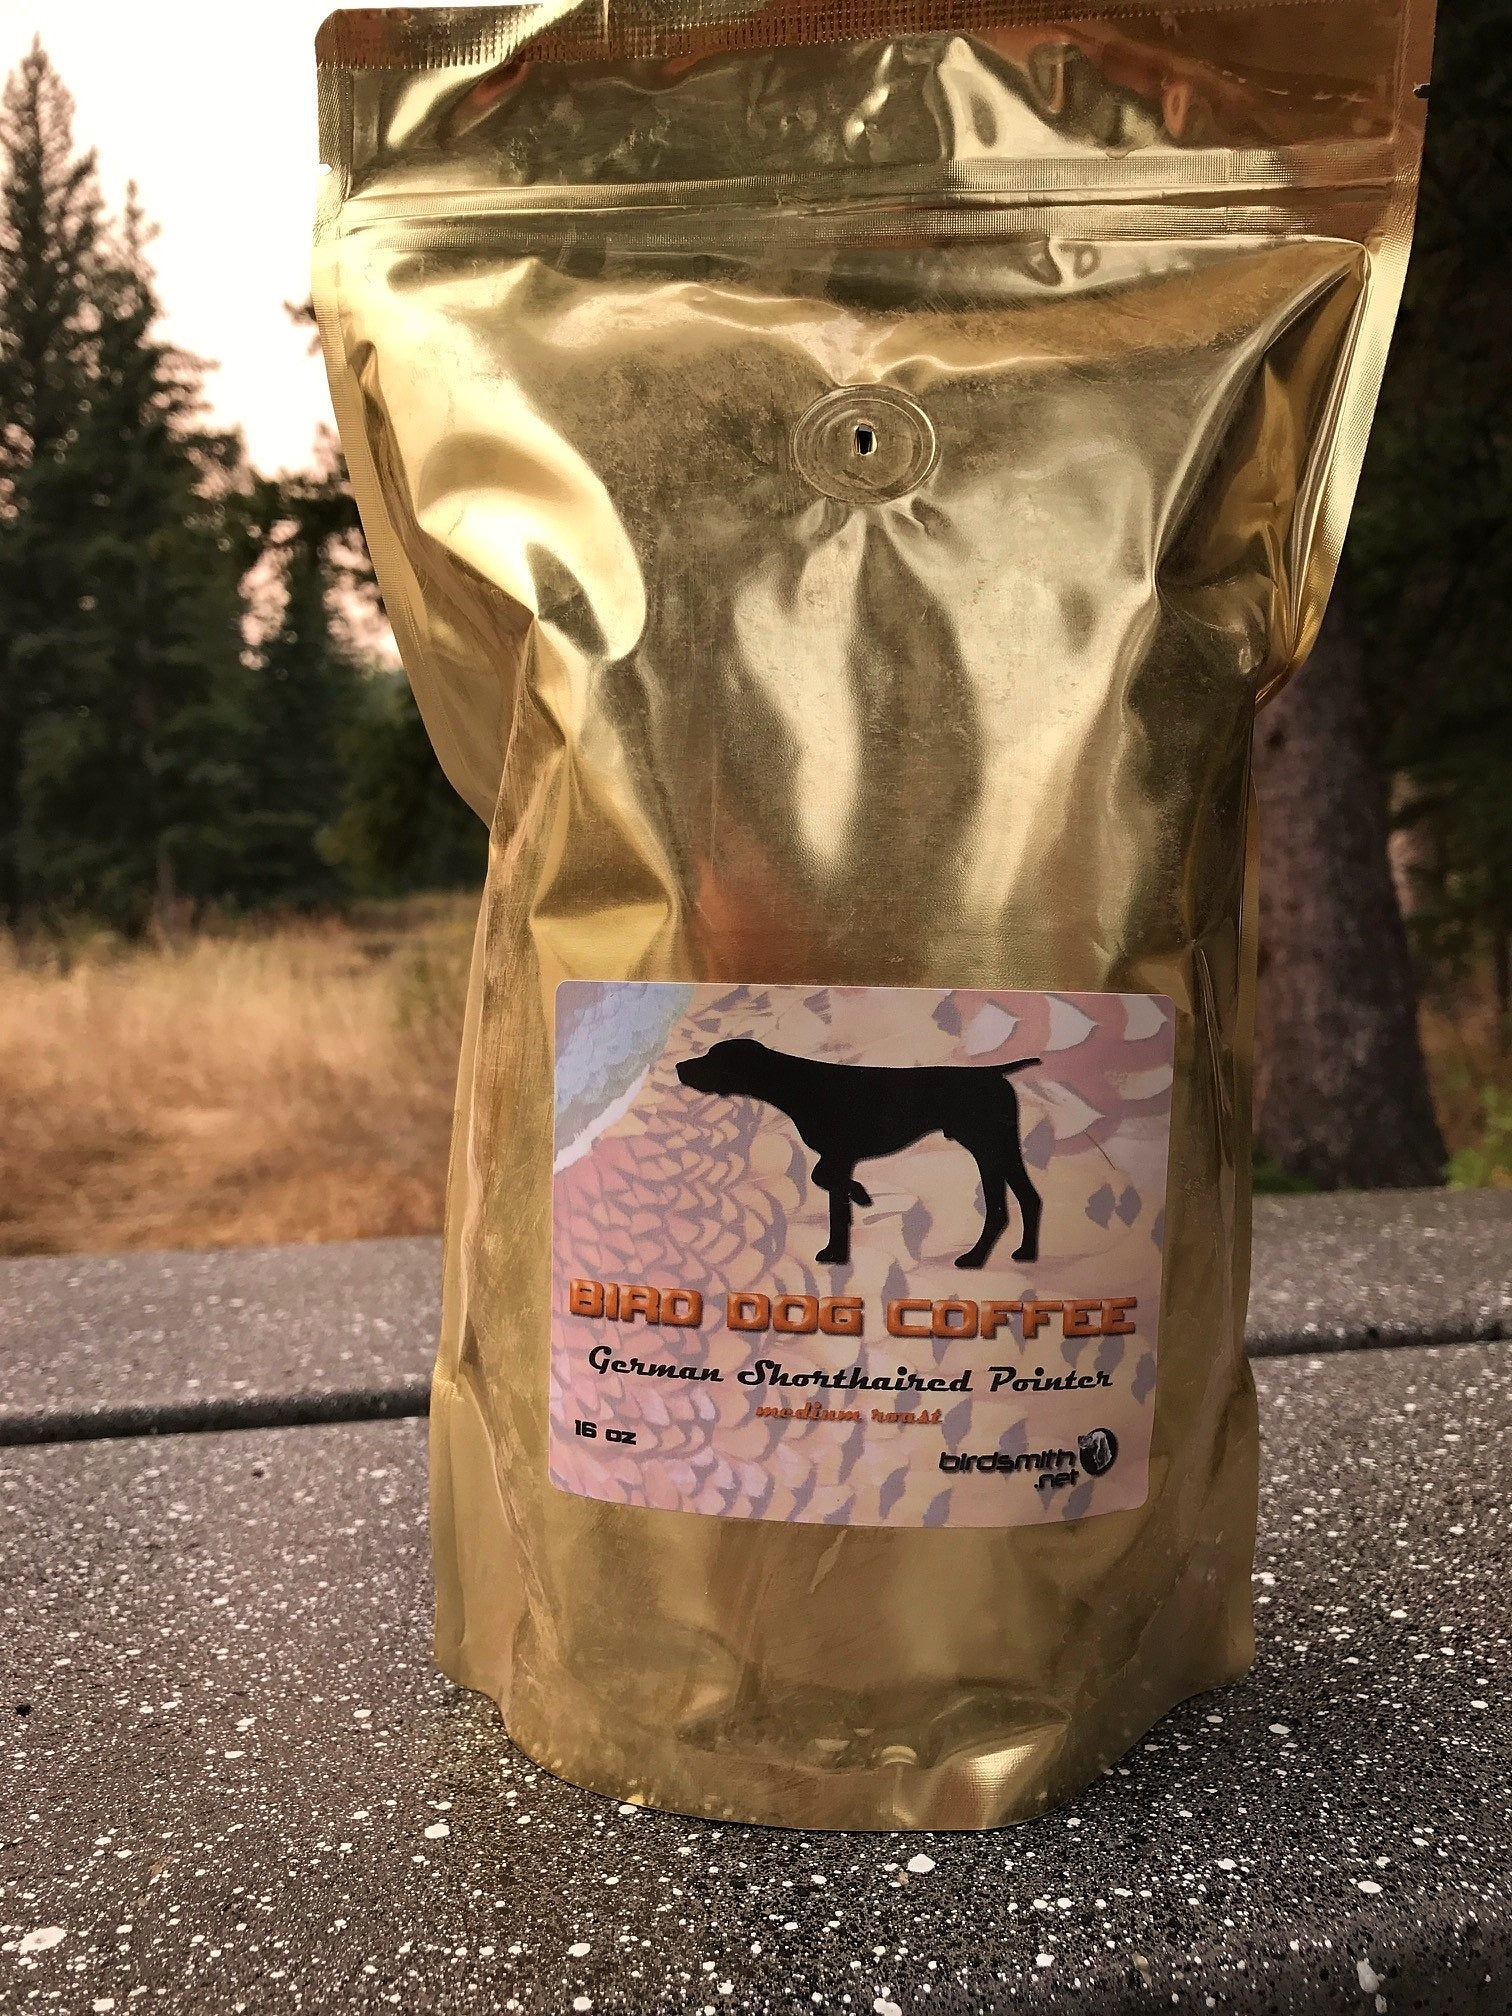 BIRD DOG COFFEE - German Shorthaired Pointer Whole Bean